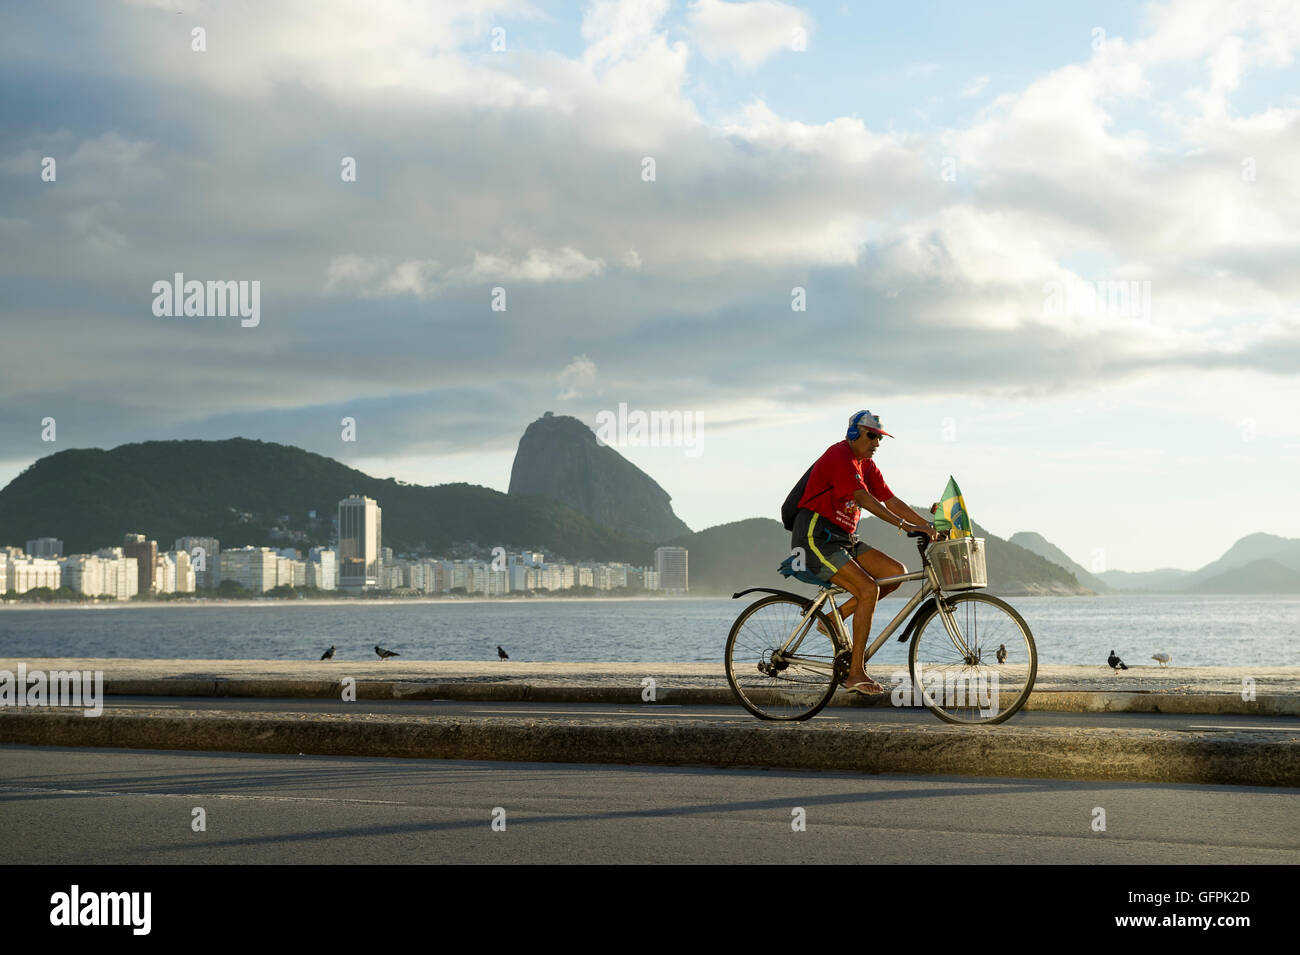 RIO DE JANEIRO - MARCH 20, 2016: A Brazilian man rides a bicycle with a Brazilian flag in the basket along the beachfront - Stock Image